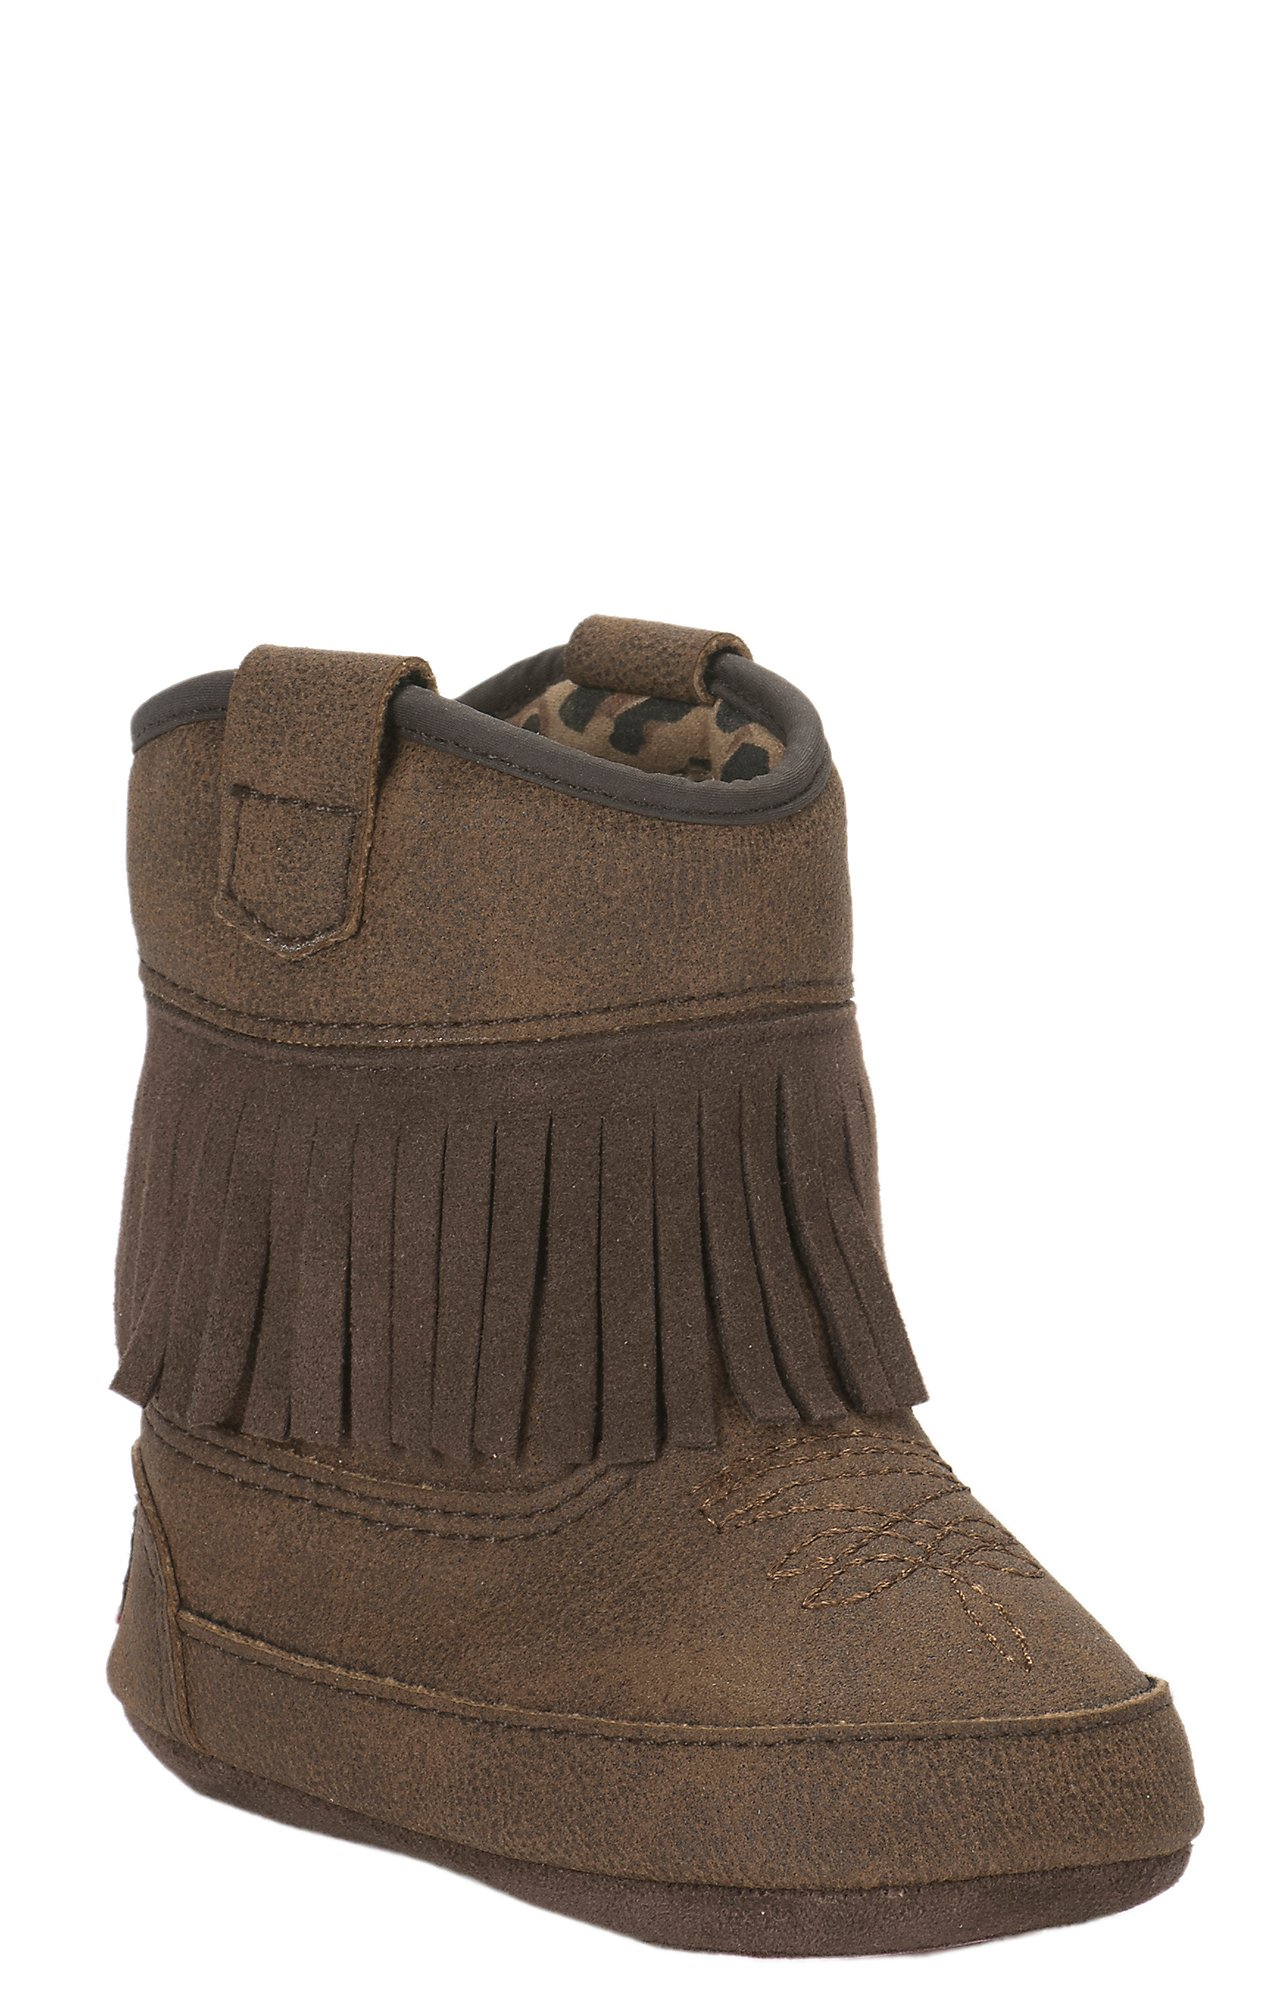 Infant & Toddler Western & Roper Boots | Cavender's